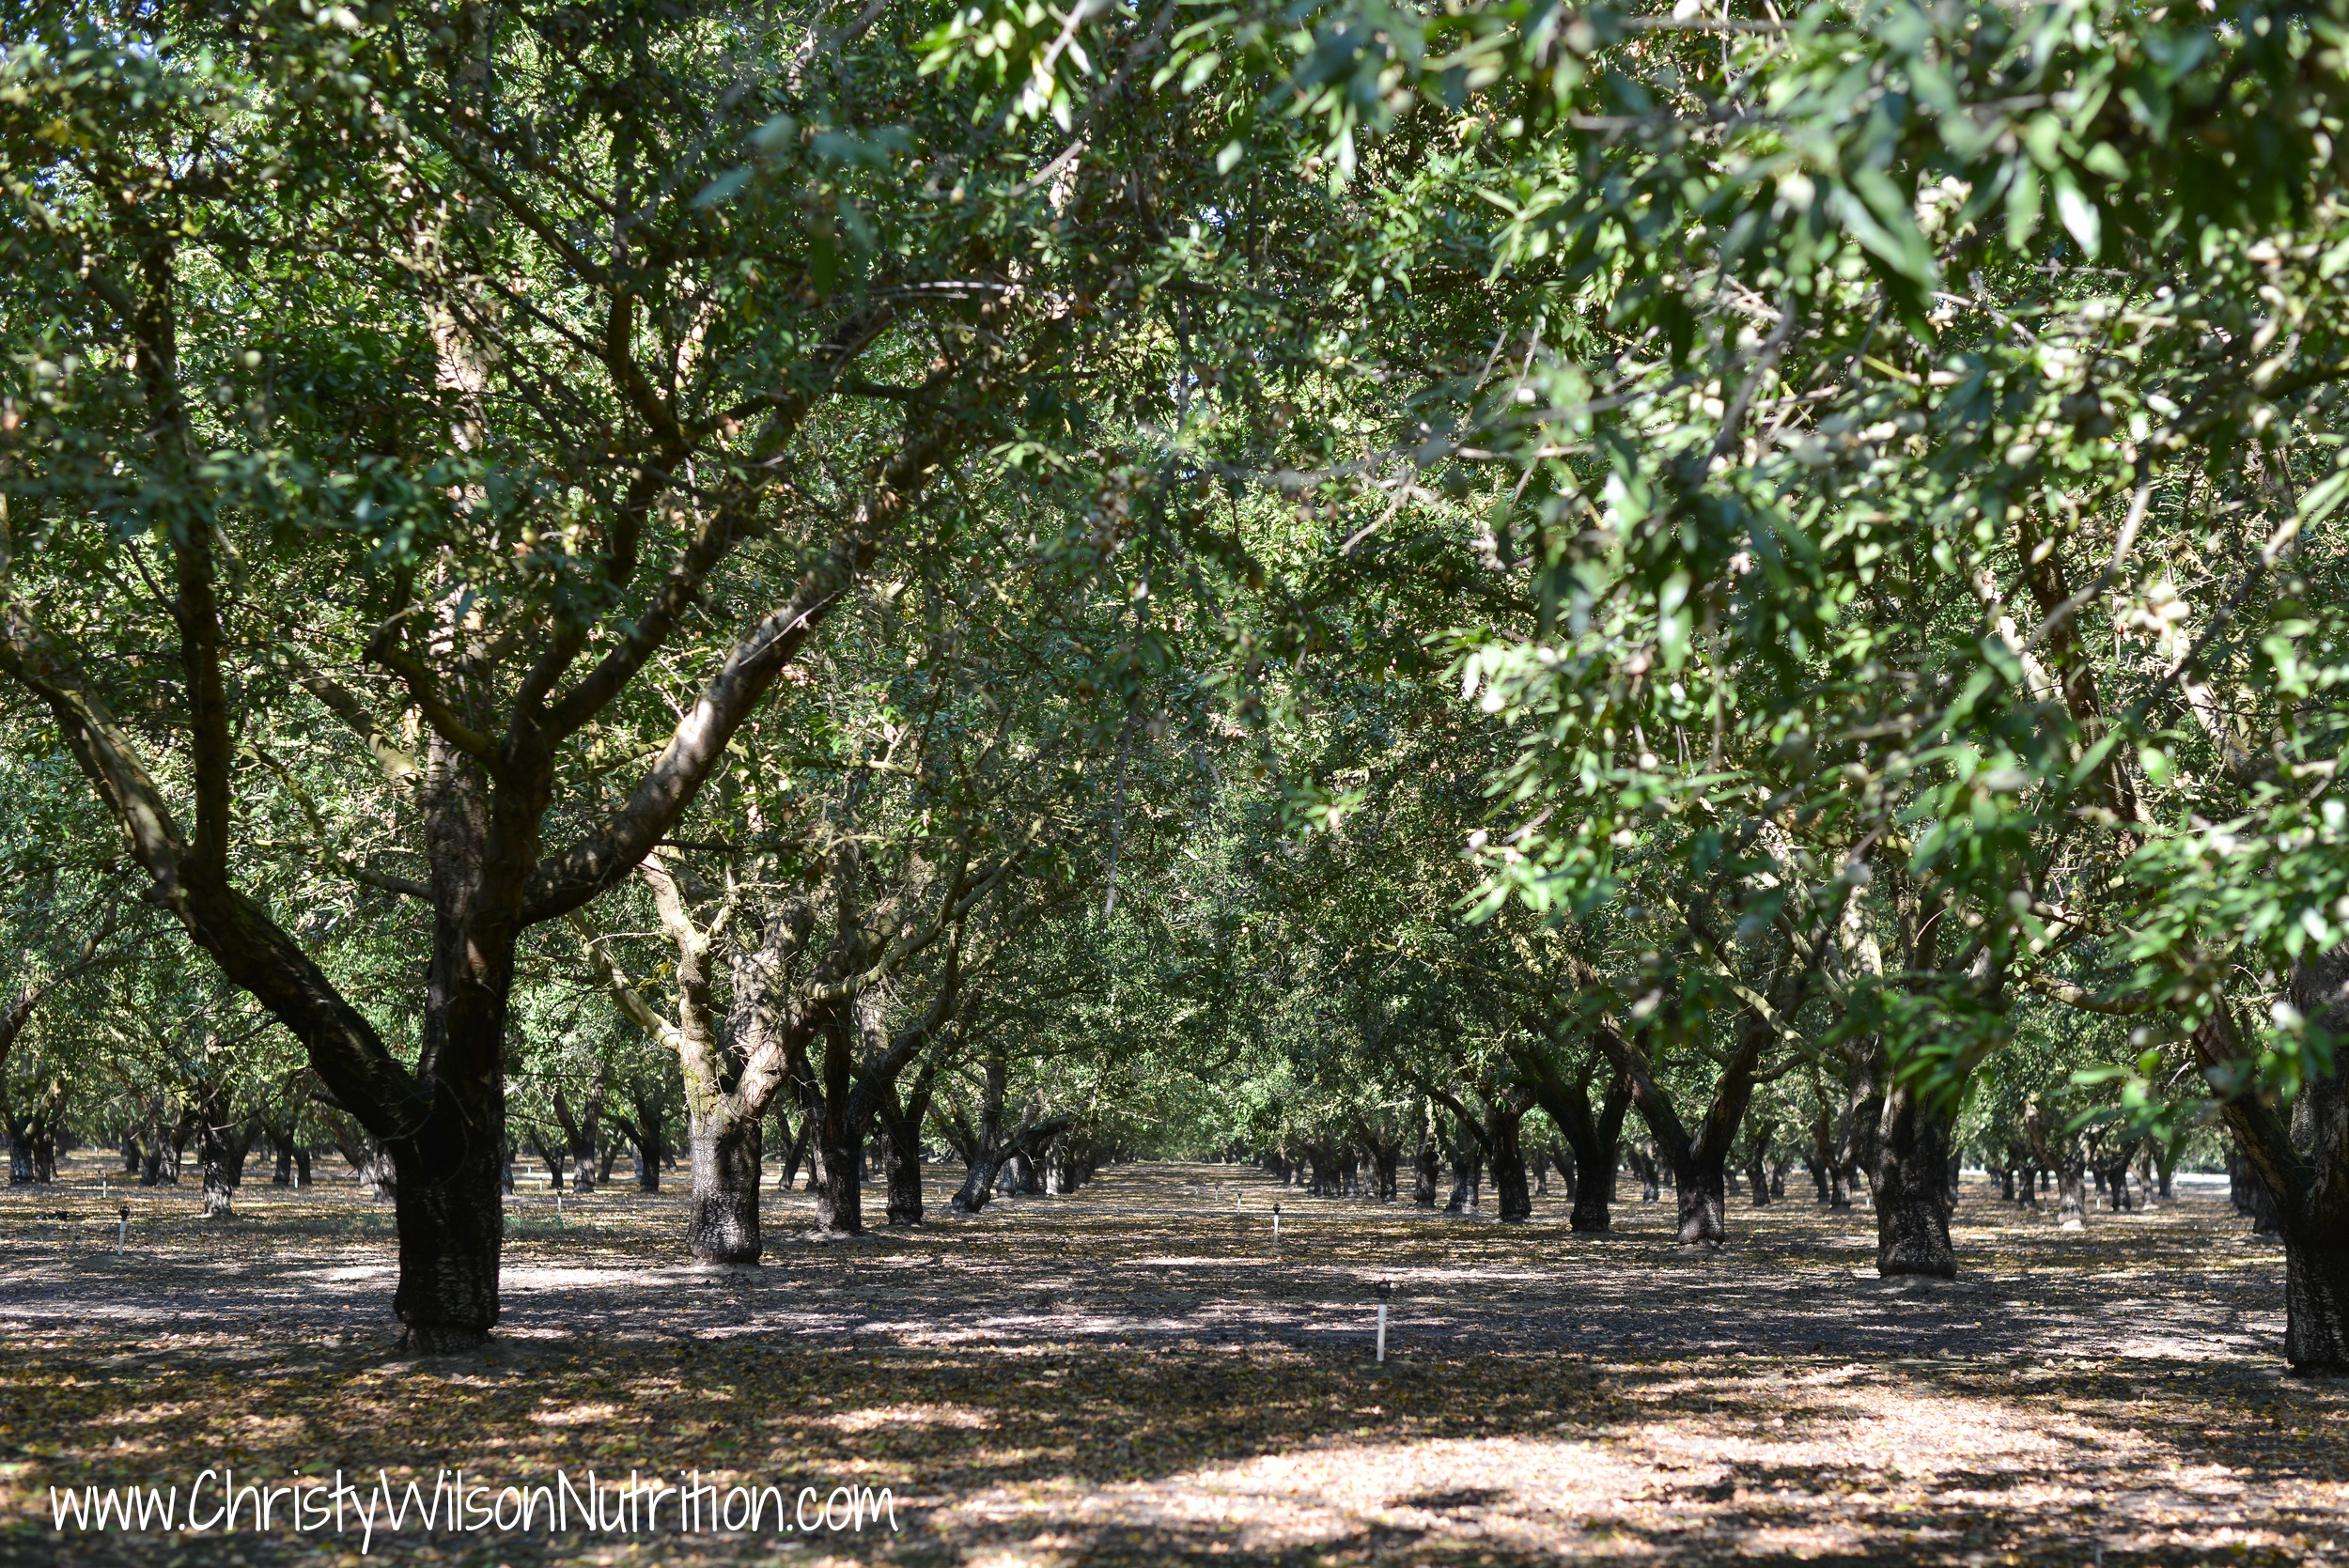 My Almond Orchard Experience with California Almonds. Here we are at Travaille & Phippen, Inc. in Mateca, California.